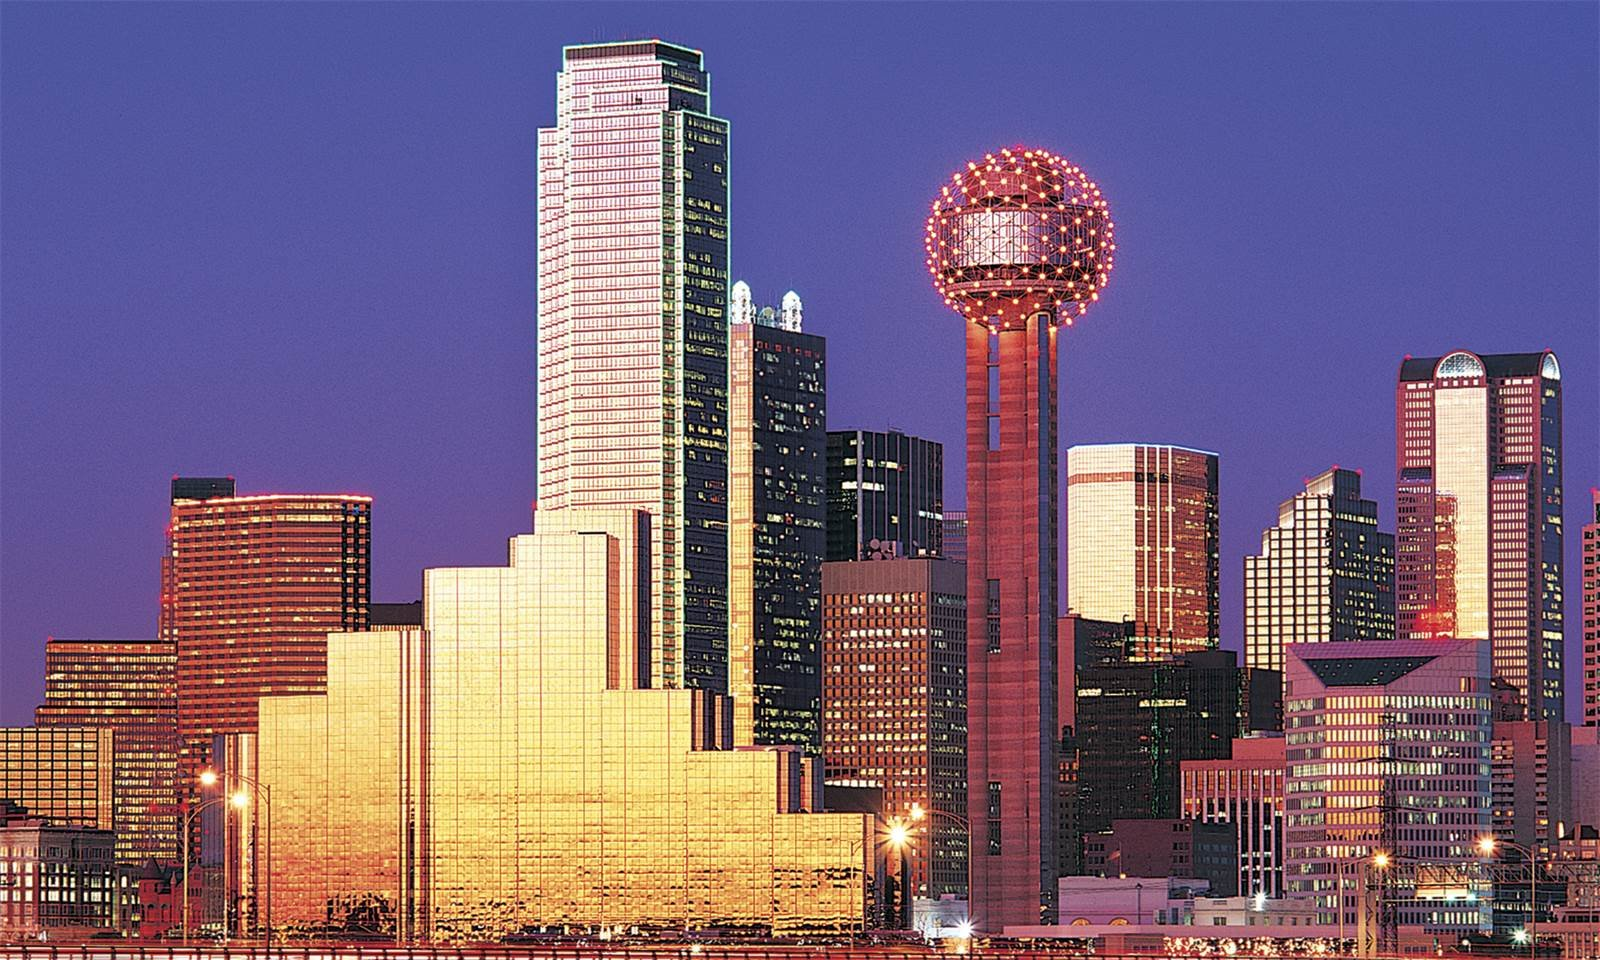 DALLAS AND FORT WORTH, TEXAS, USA